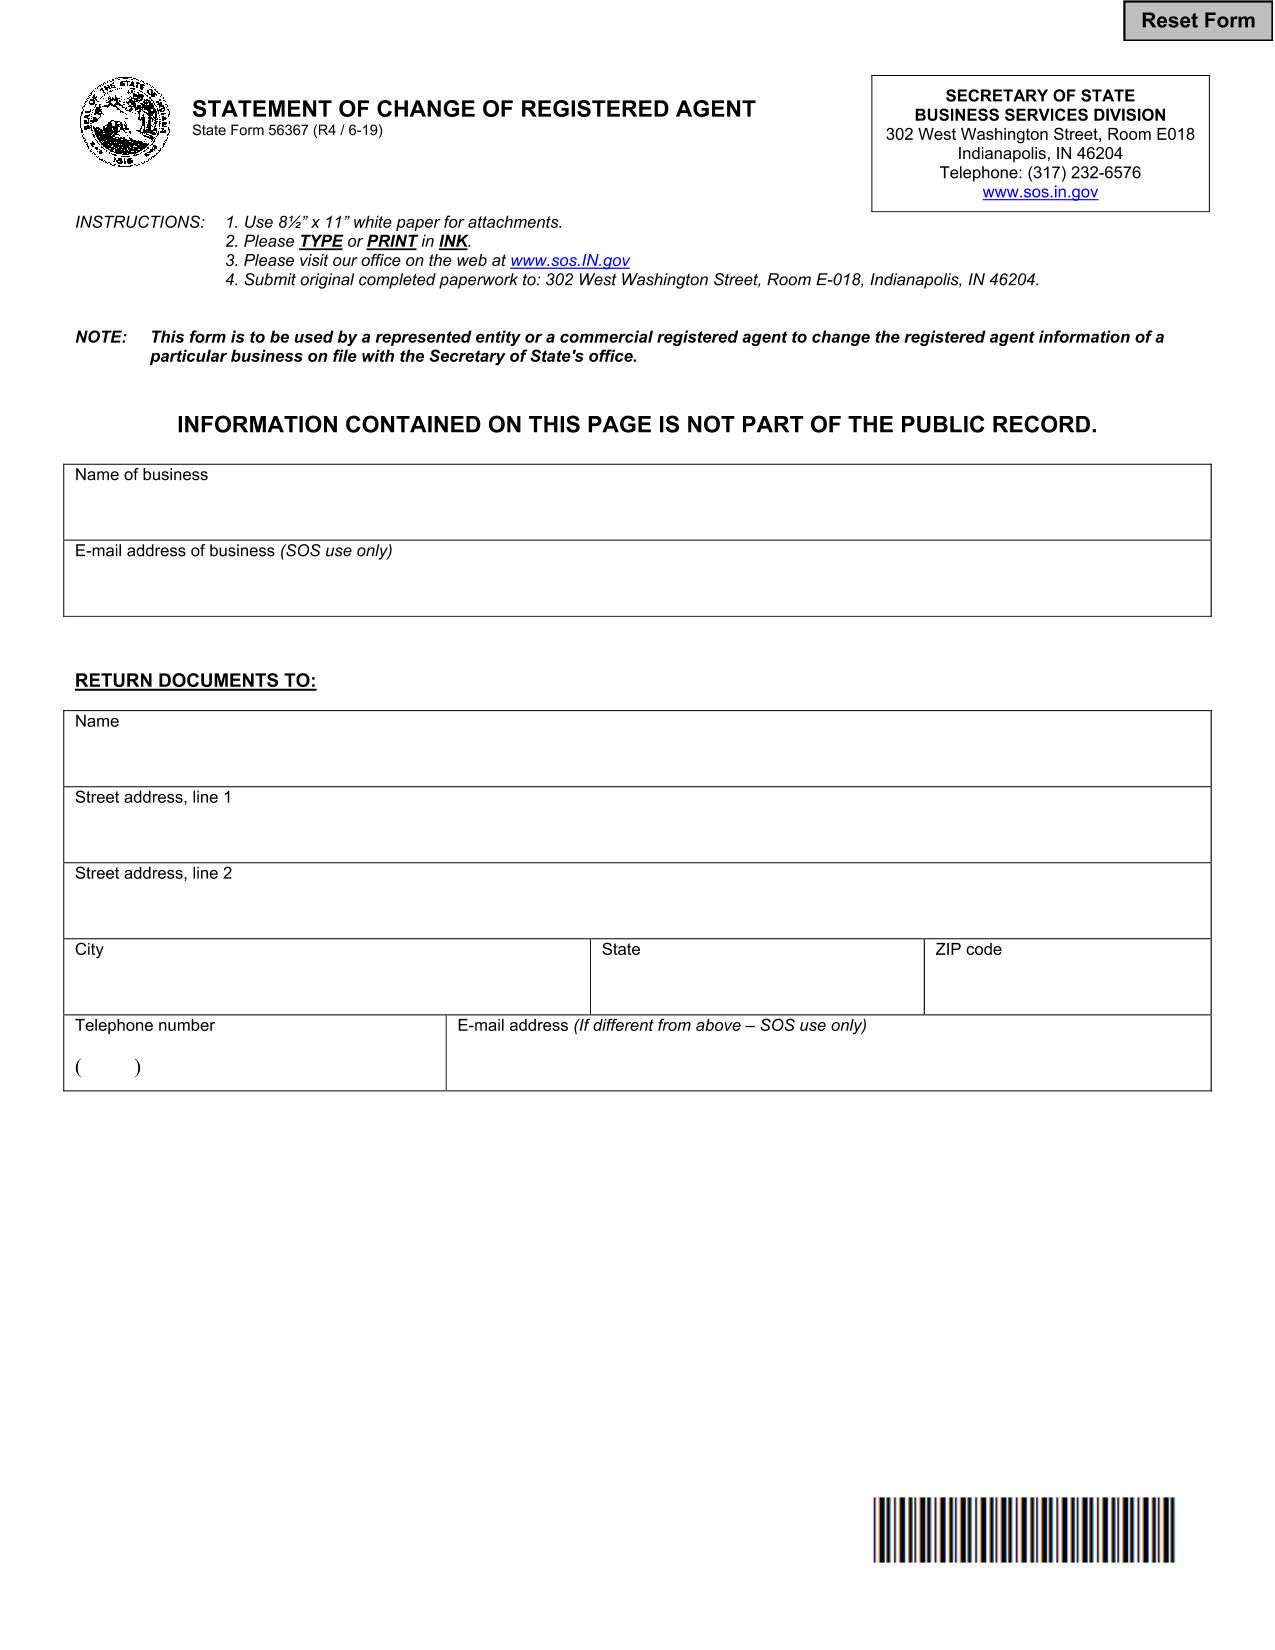 indiana-notice-of-change-of-registered-agent